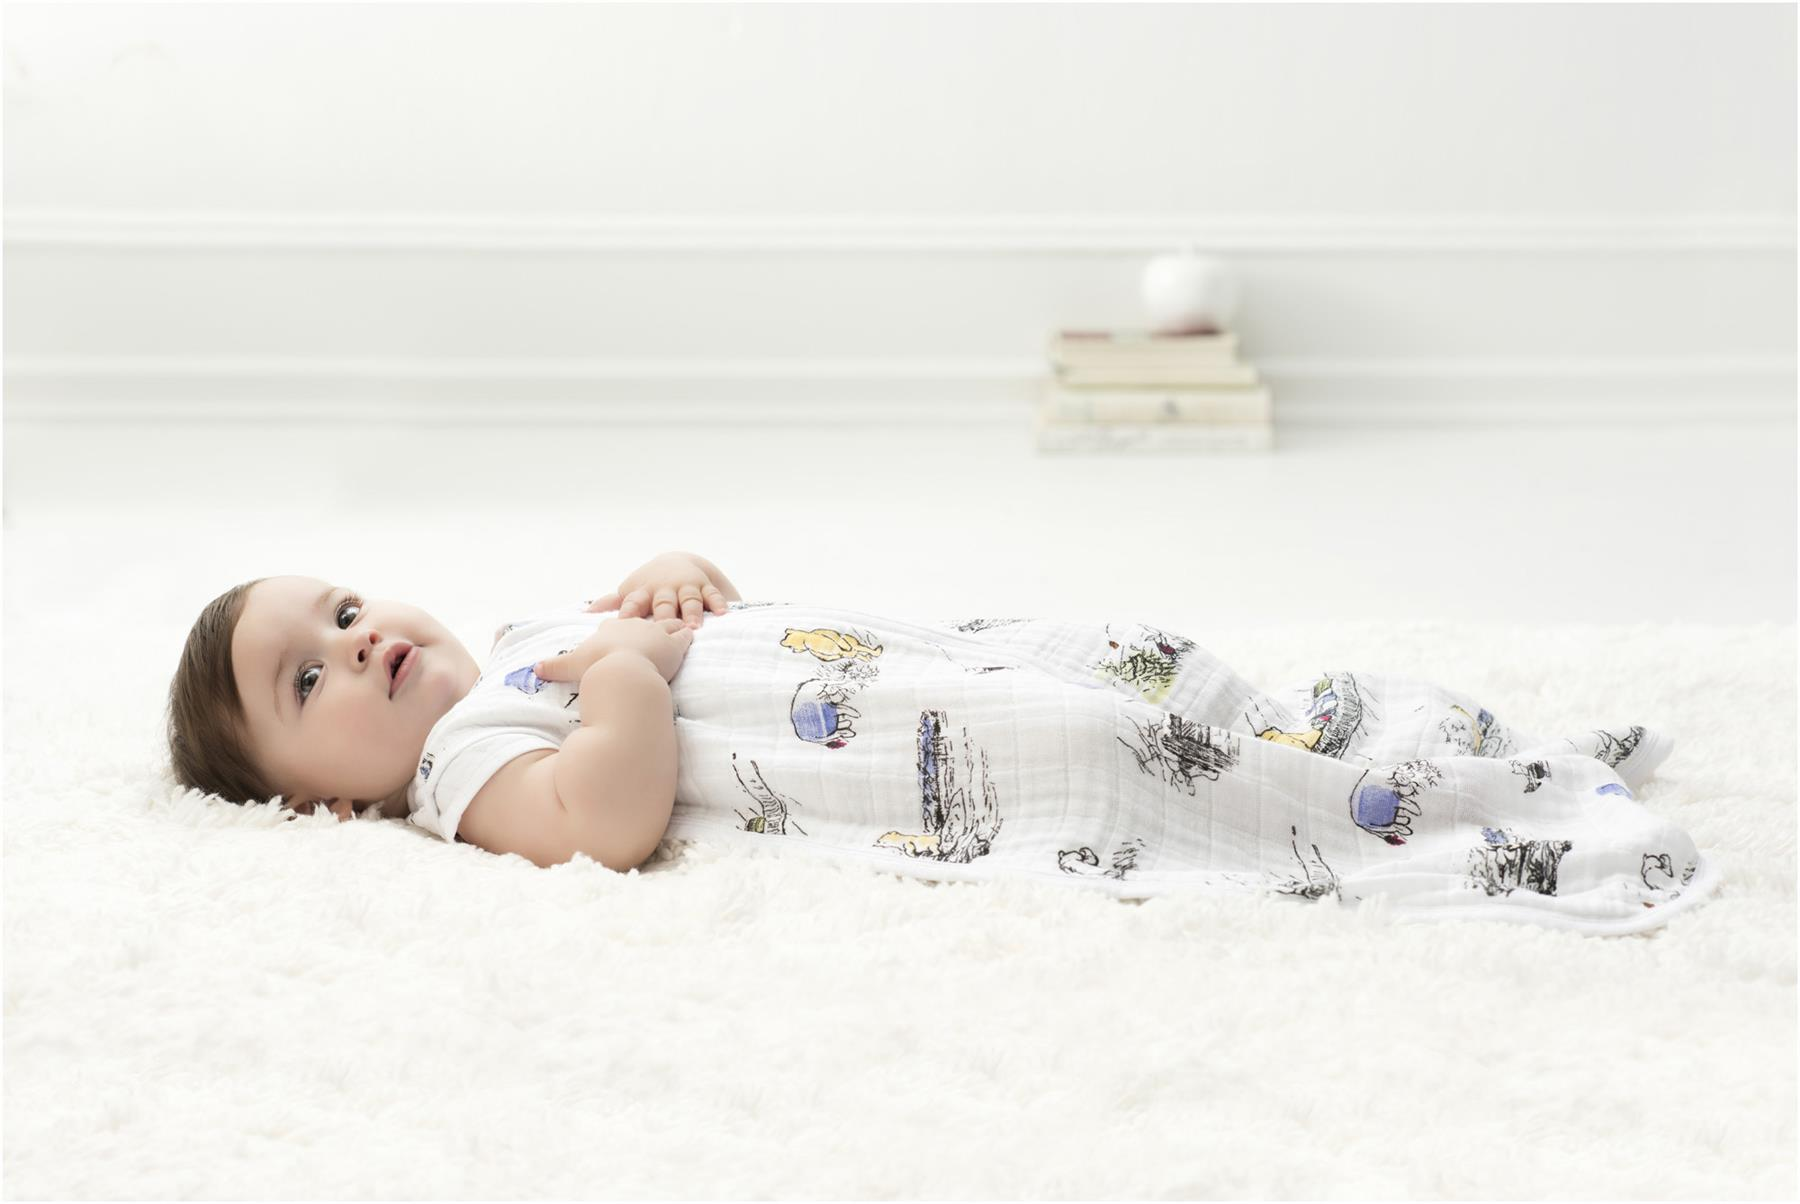 0-6M Baby Bedding BN Anais SLEEPING BAG 1.0 TOG Aden TWINKLE CLUSTER